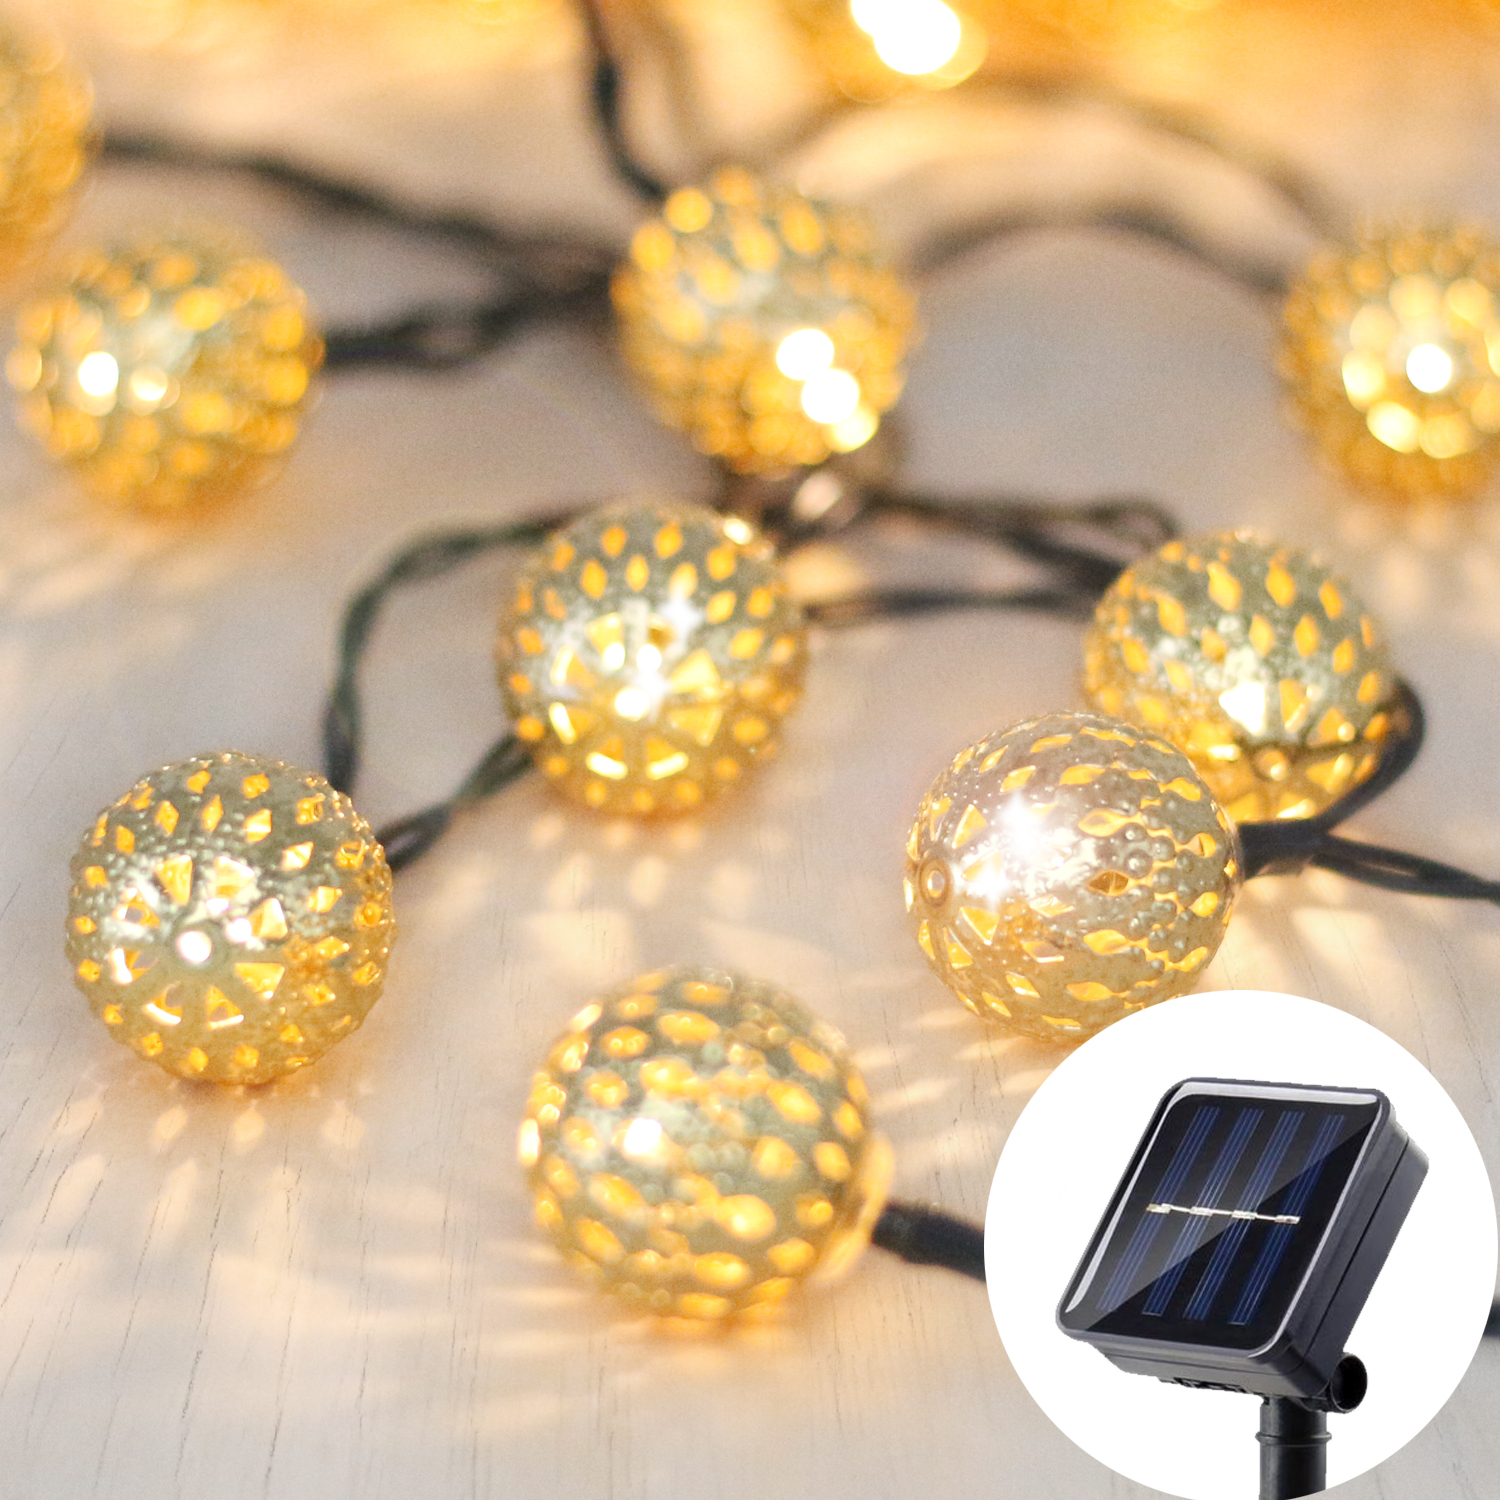 Solar Outdoor String Lights, Betus Moroccan globe Waterproof LED Fairy String Light - Decorations for Garden, Porch, Home, Christmas, Wedding & Party – 30 LEDs, 15 Feet, Warm White